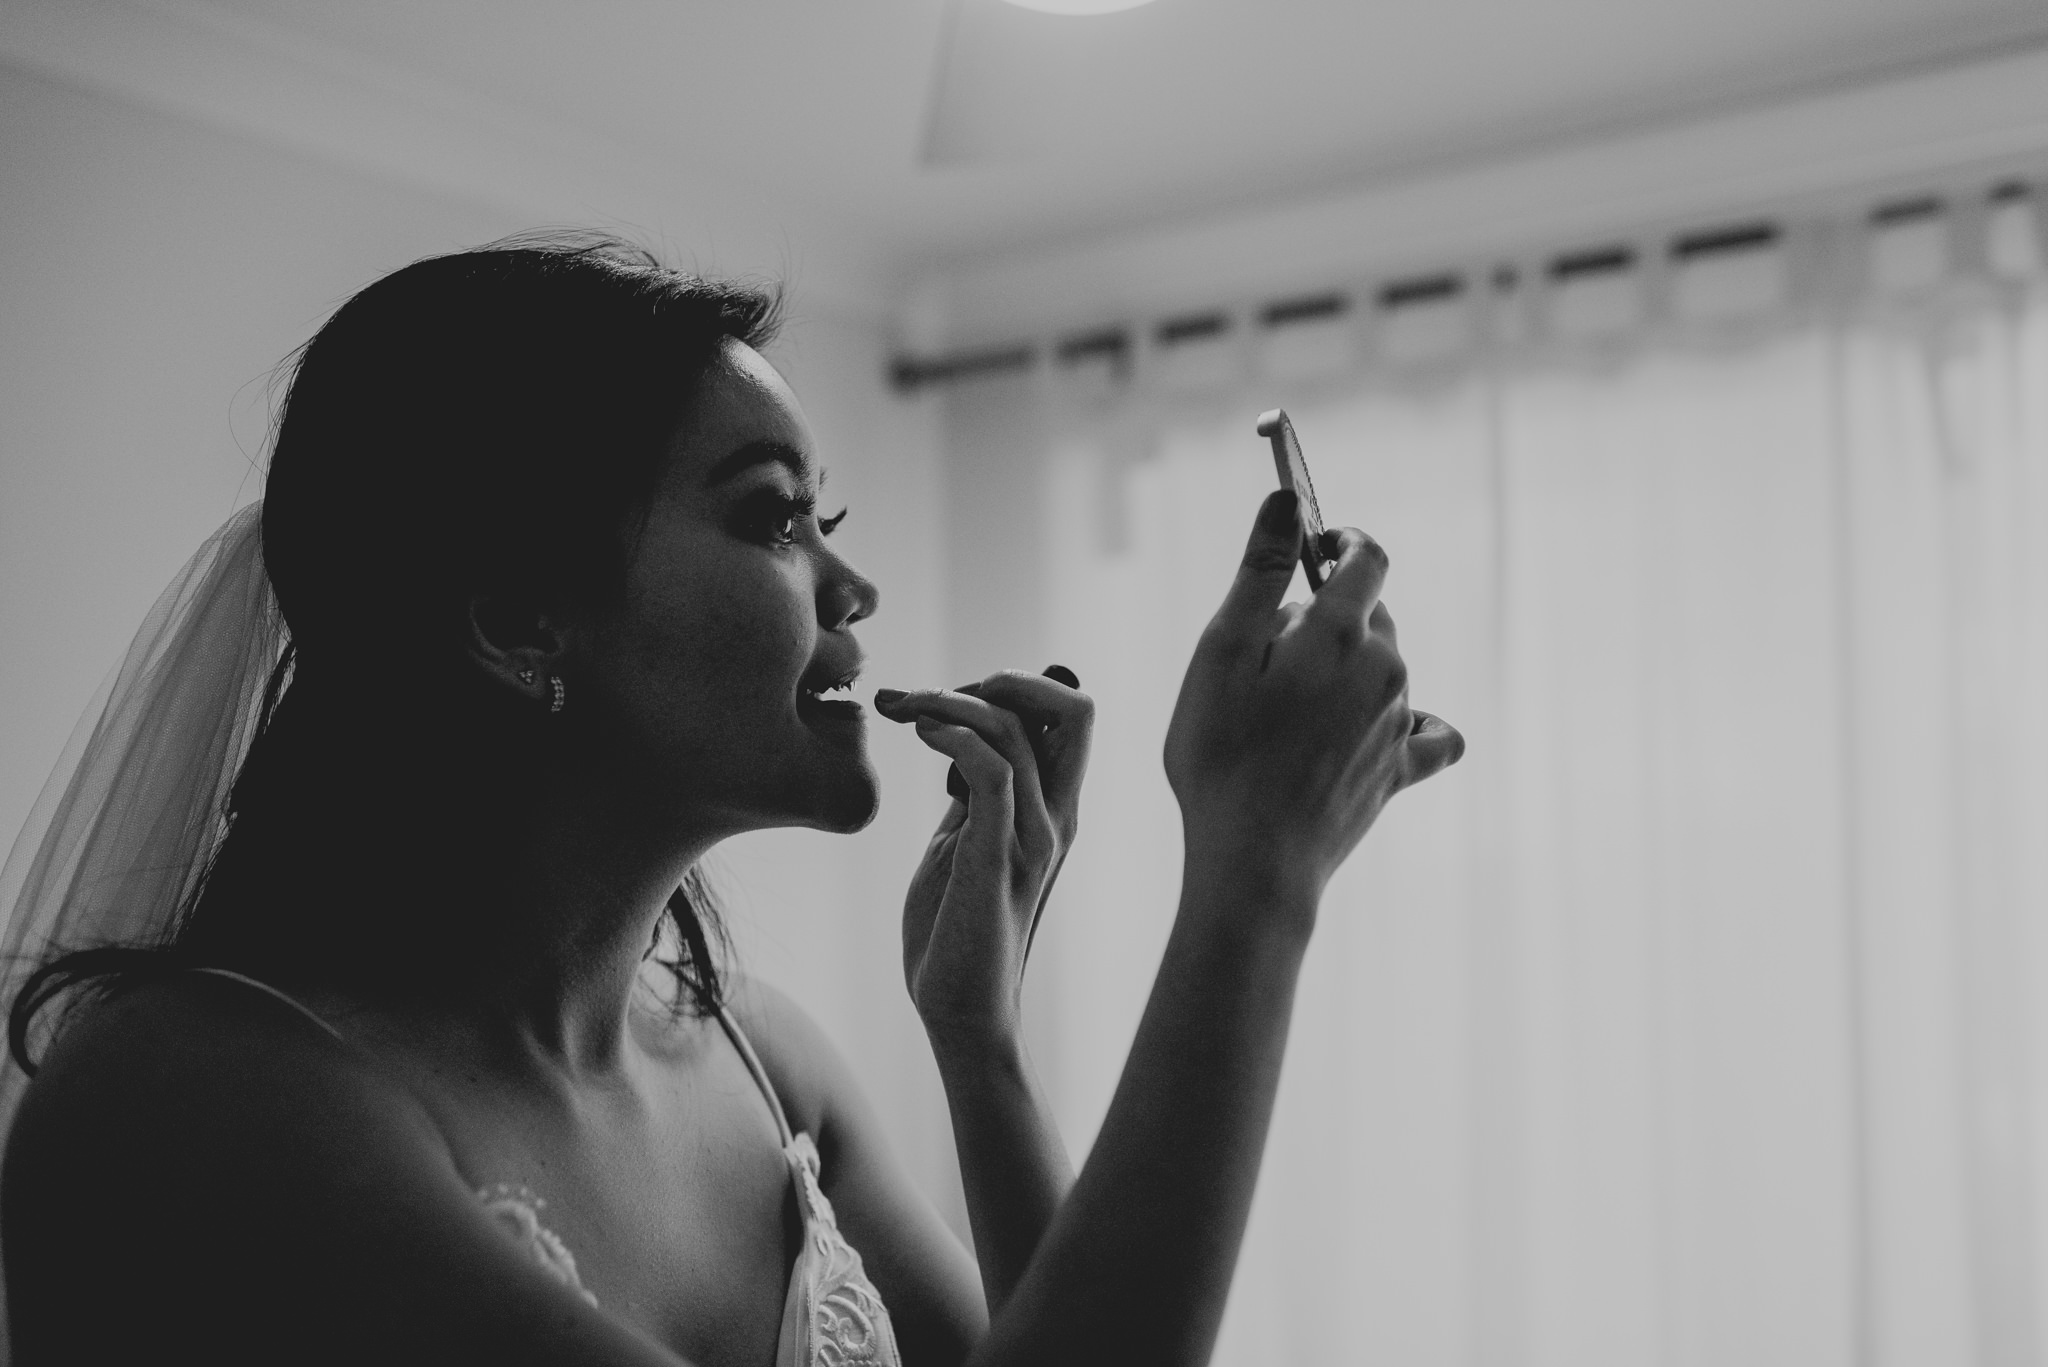 An asian woman applies lipstick with her fingers as she looks at a small mirror